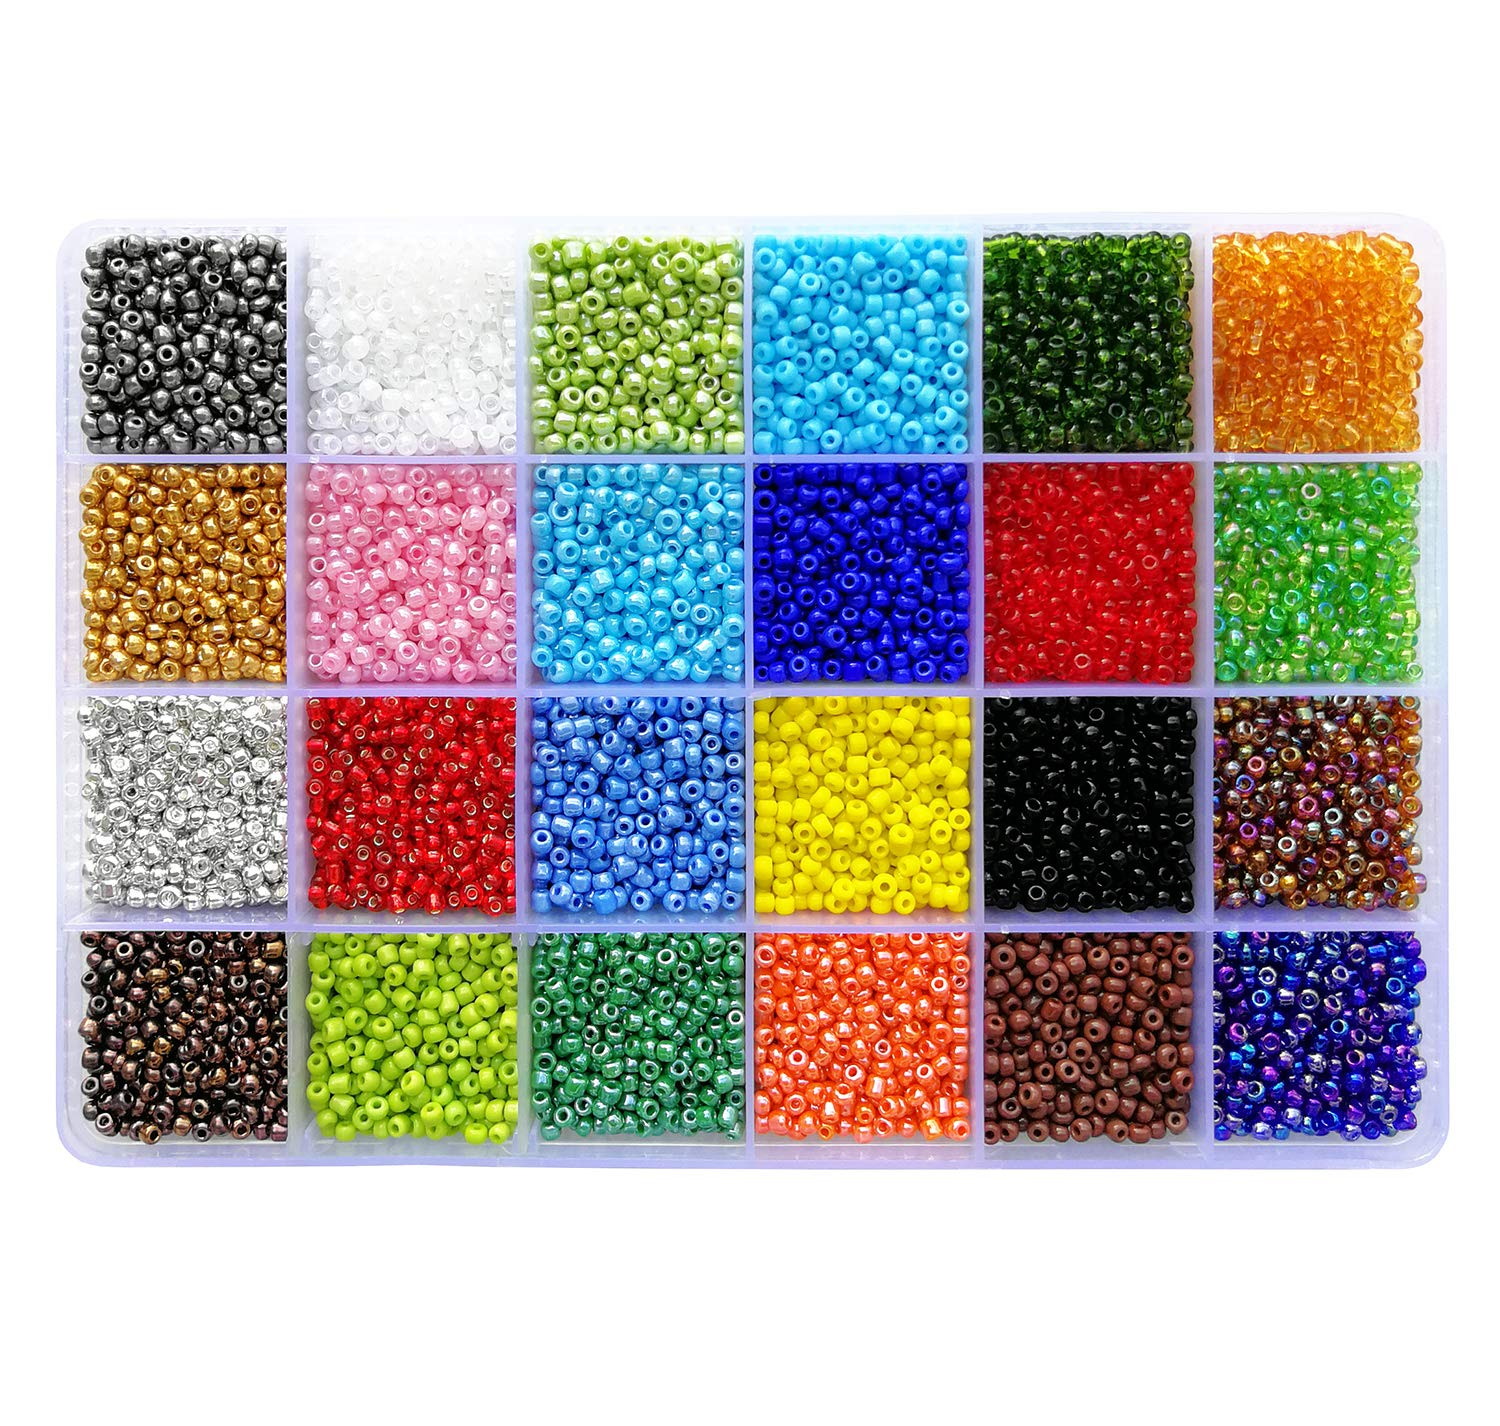 BALABEAD Seed Beads 15000pcs in Box Ceylon Beads 12/0 Glass Craft Beads Loose Spacer 2mm Seed Beads, Hole 0.6mm